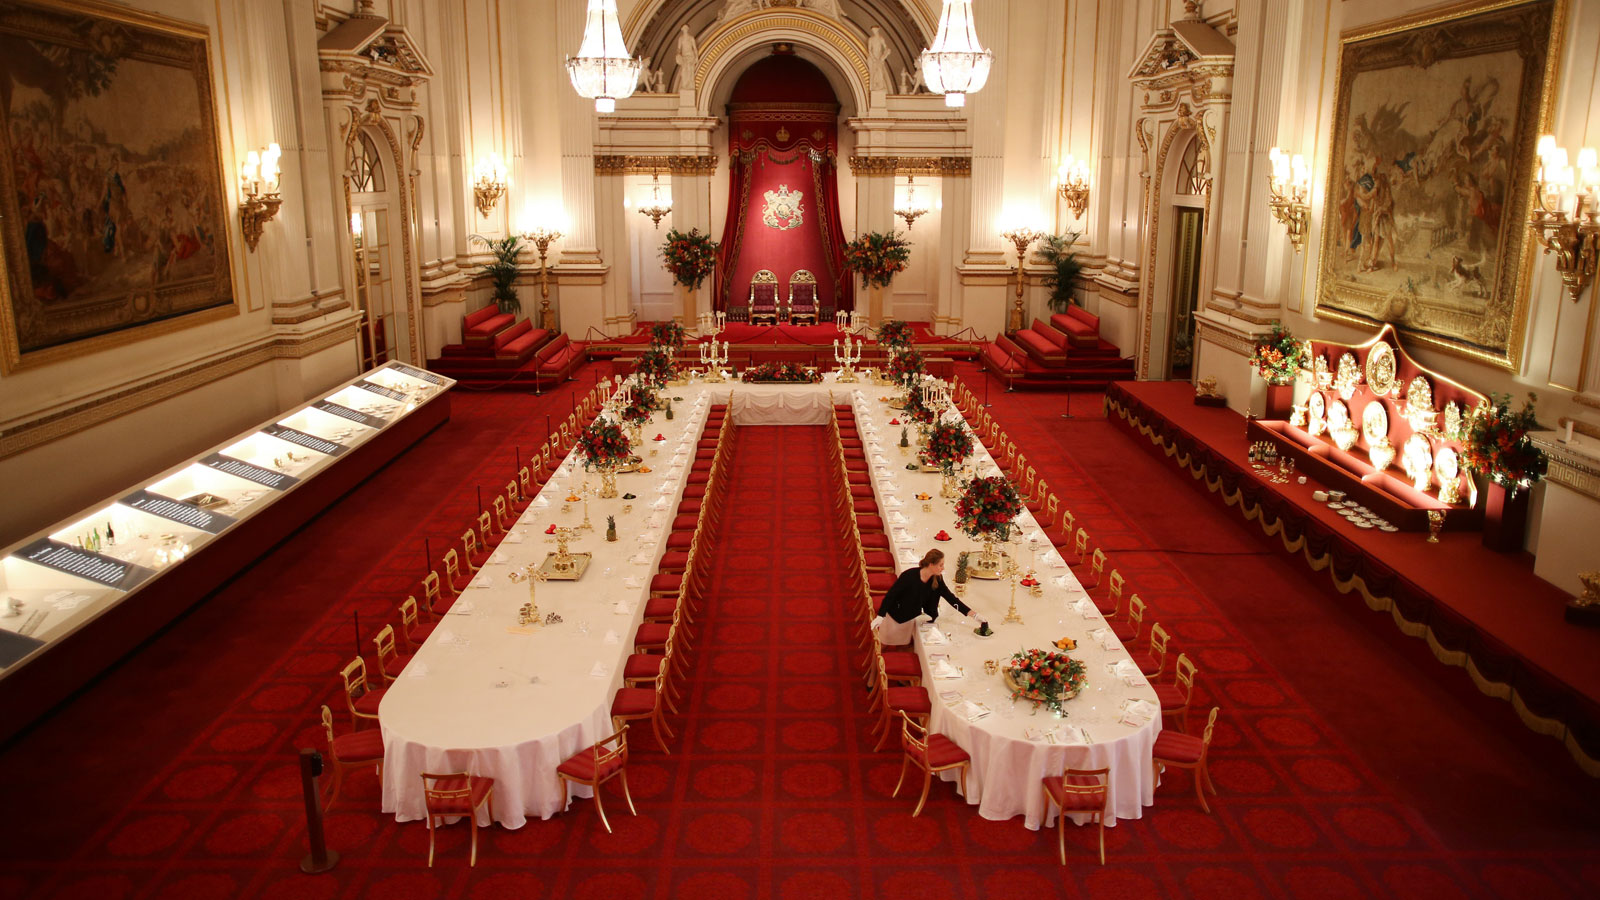 Merveilleux Buckingham Palace Tour: Your Own VIP Look At The Royals   CNN Video